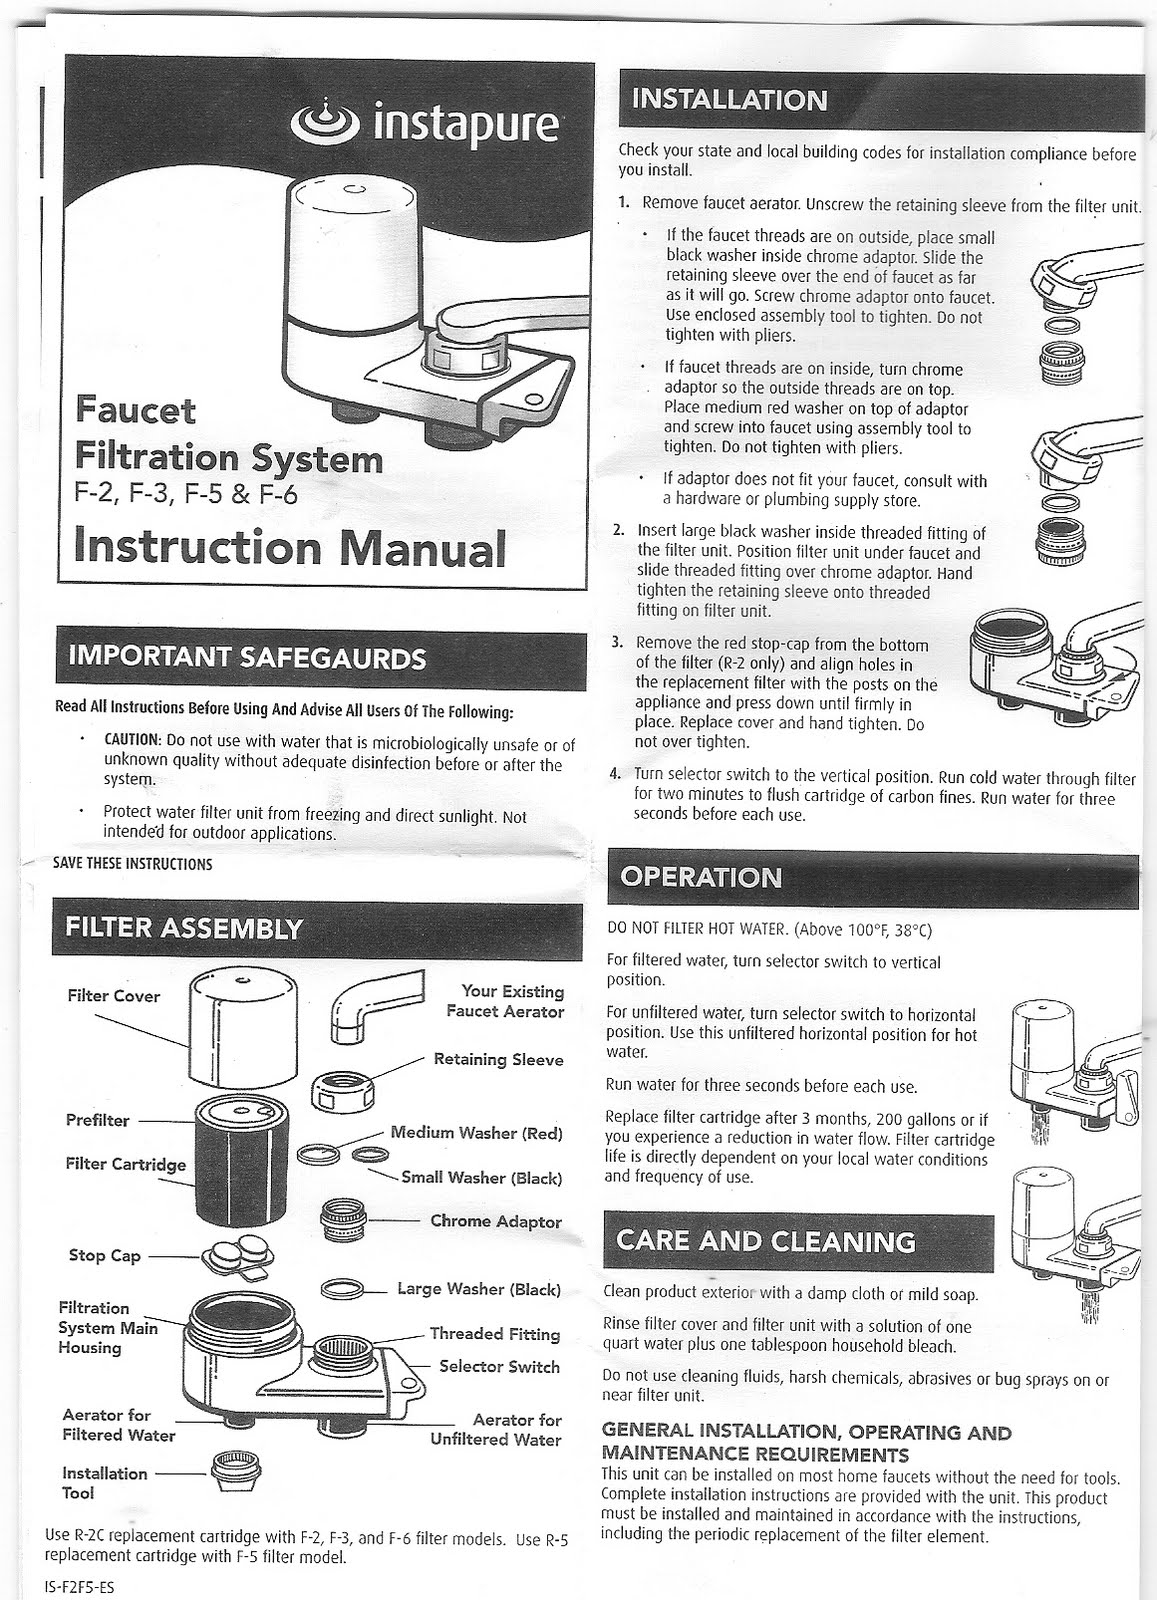 Healthy living 123 instapure f2 faucet water filter system instapure f2 faucet water filter system operating instruction manual pages 1 and 2 fandeluxe Image collections